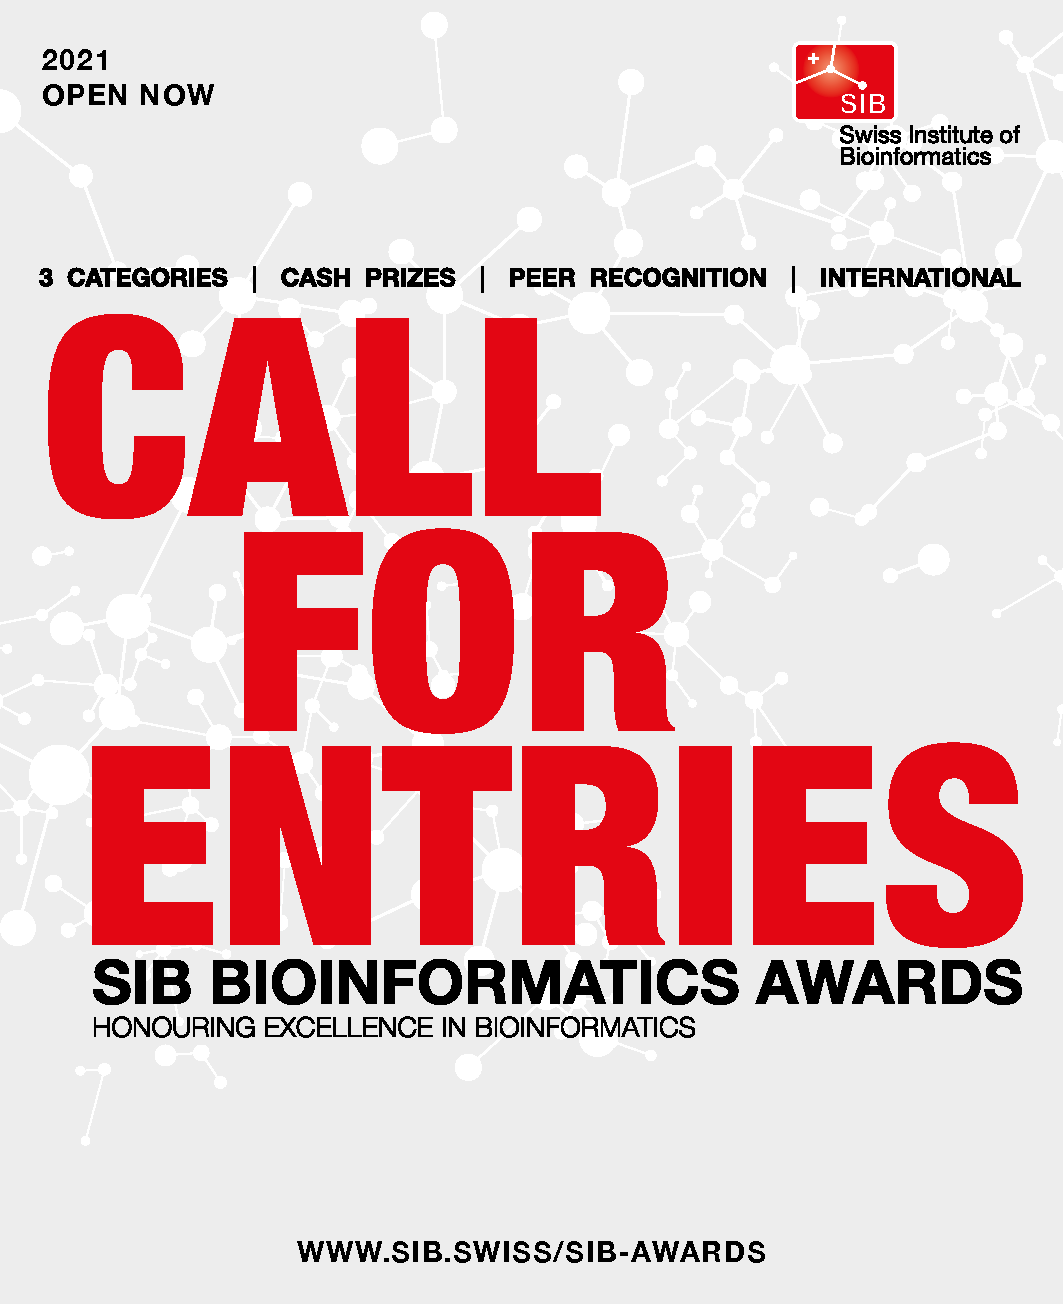 SIB AWARDS HOMEPAGE EVENTS v1